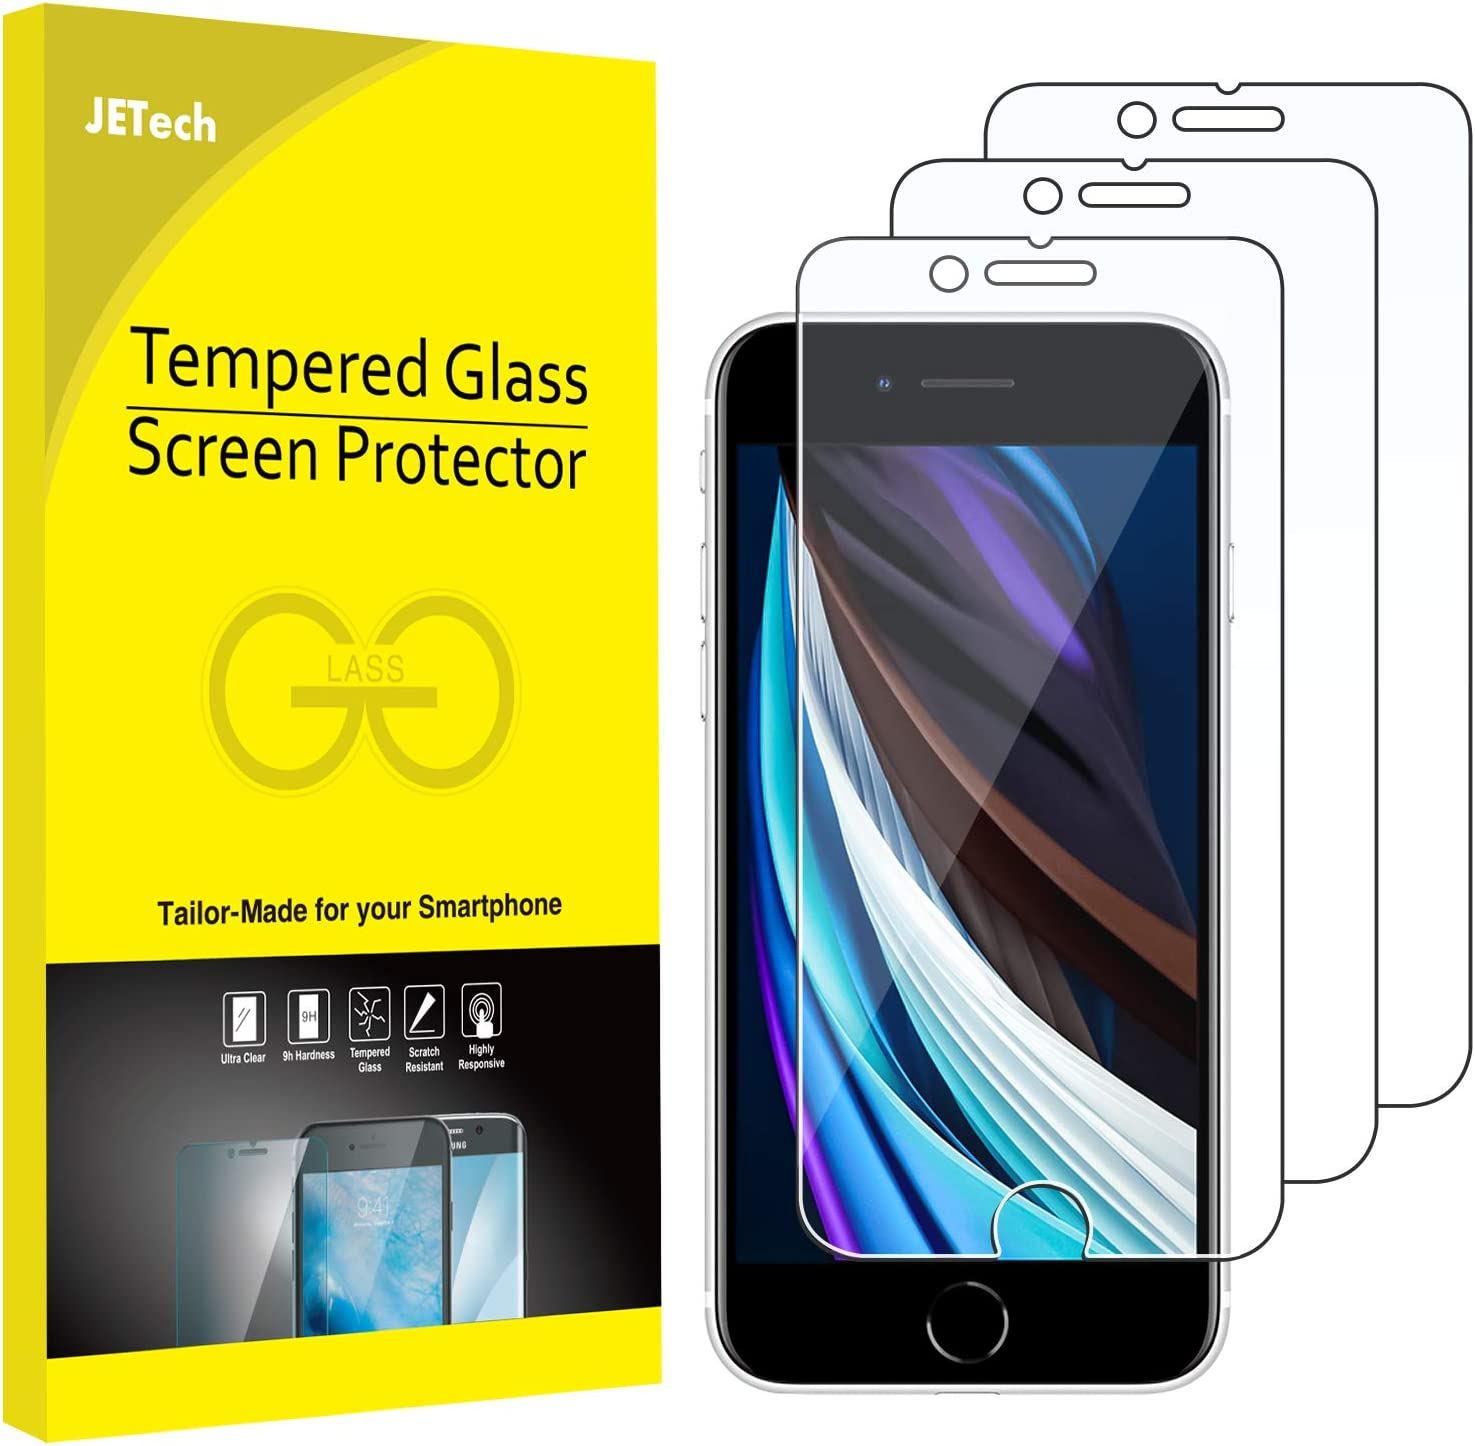 JETech Screen Protector for iPhone SE 2020, 4.7-Inch, Tempered Glass Film, 3-Pack